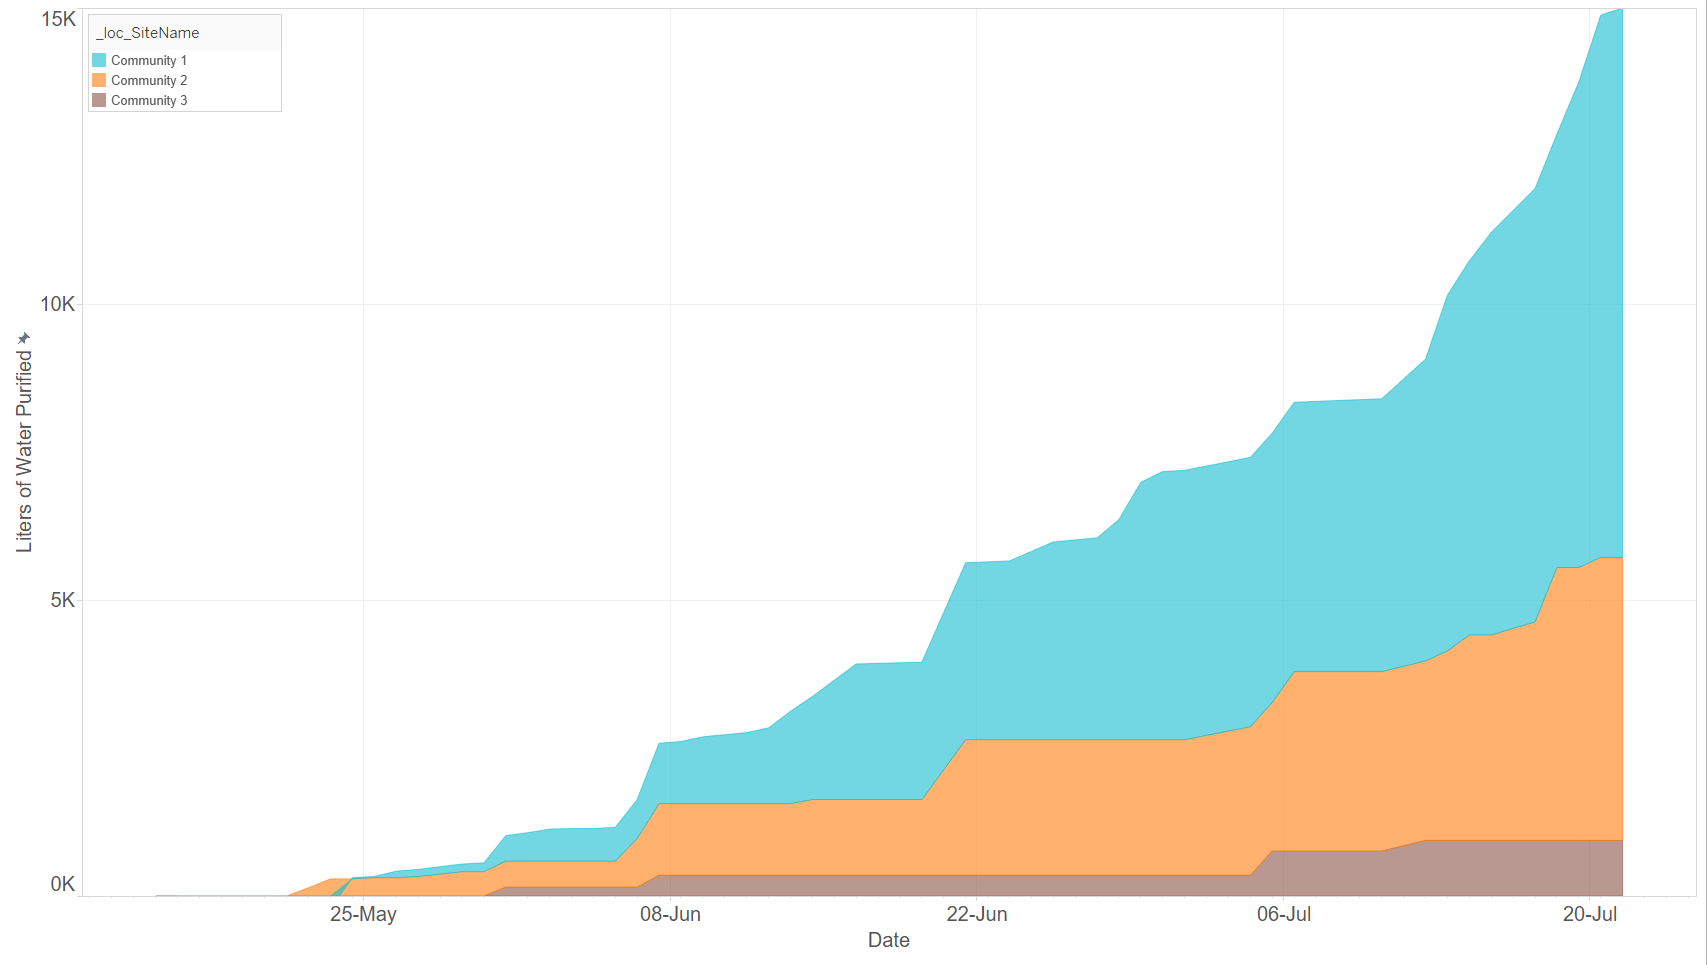 Cumulative safe water delivered over time, shaded by community.